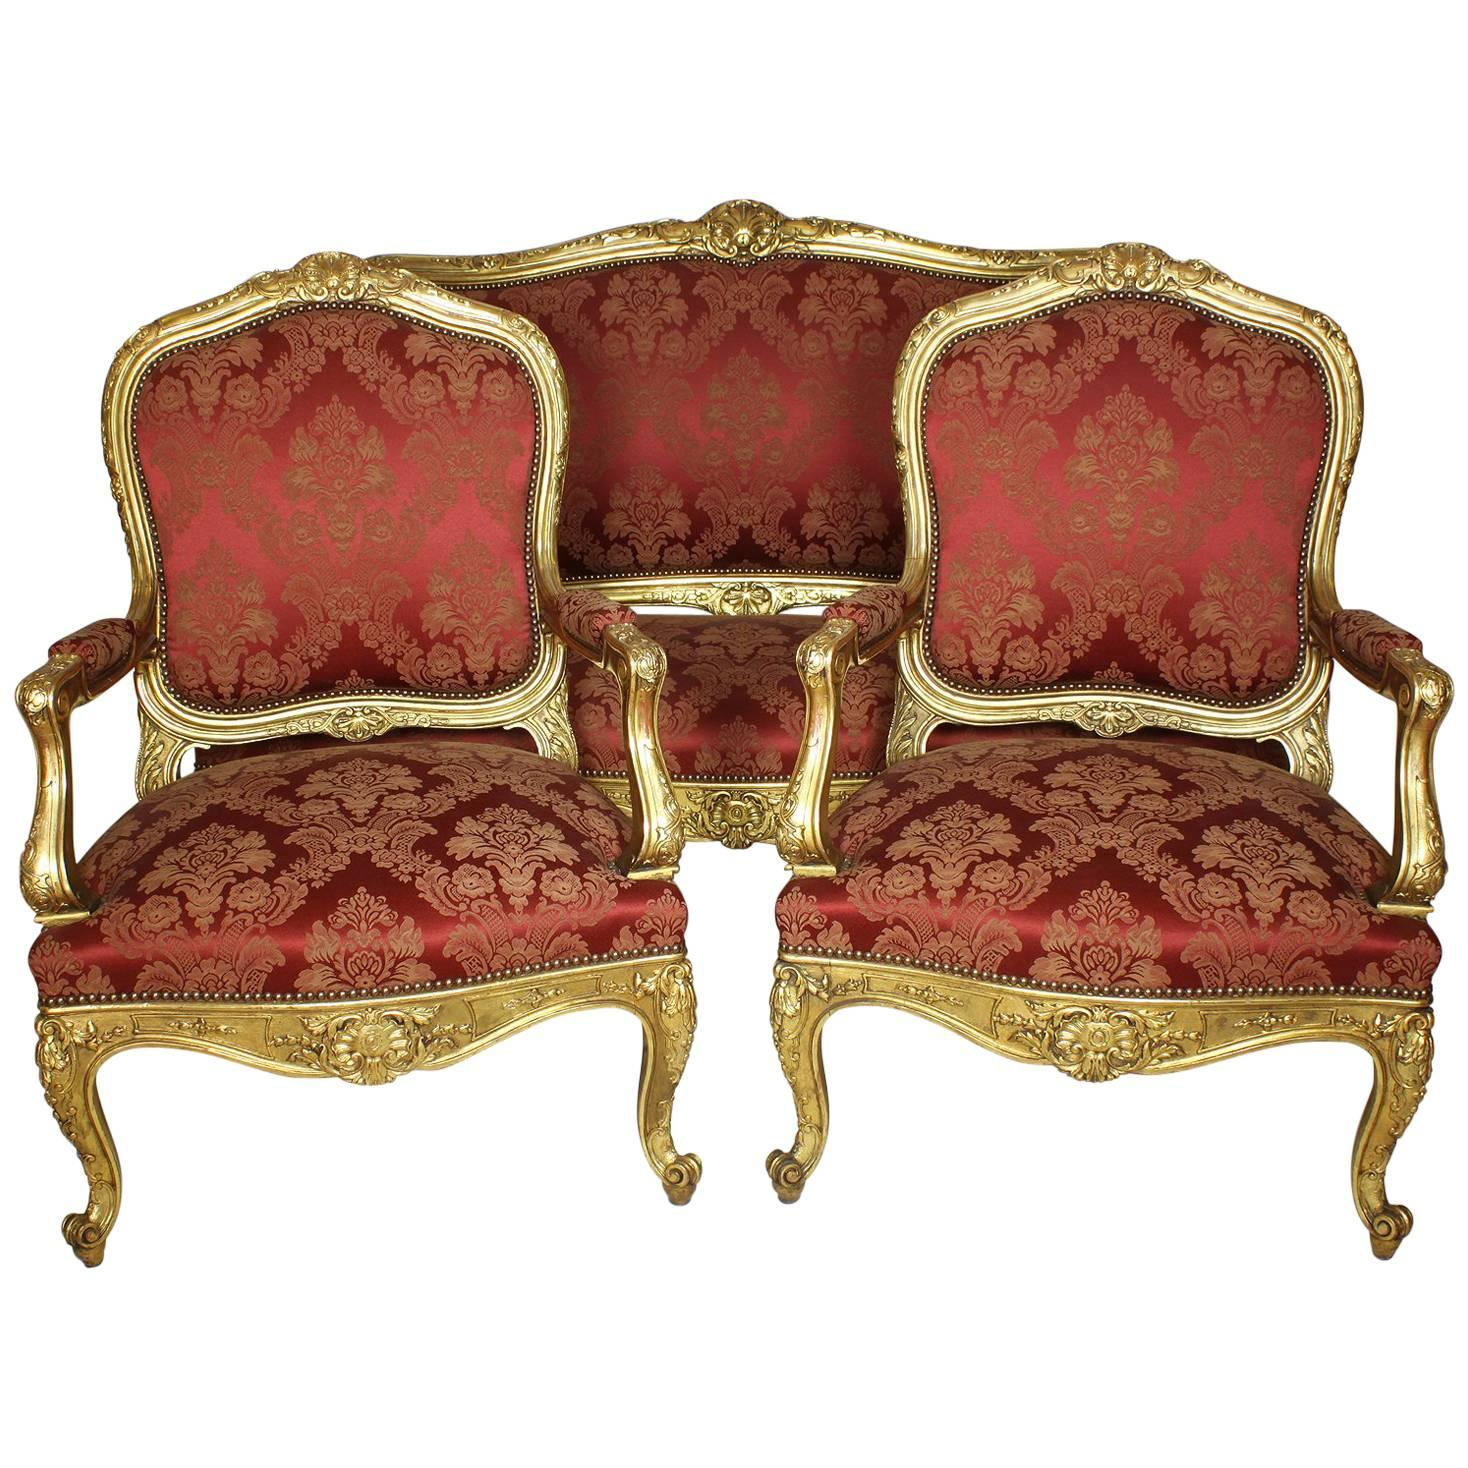 Genial Palatial 19th Century Louis XV Style Giltwood Carved Three Piece Salon Suite